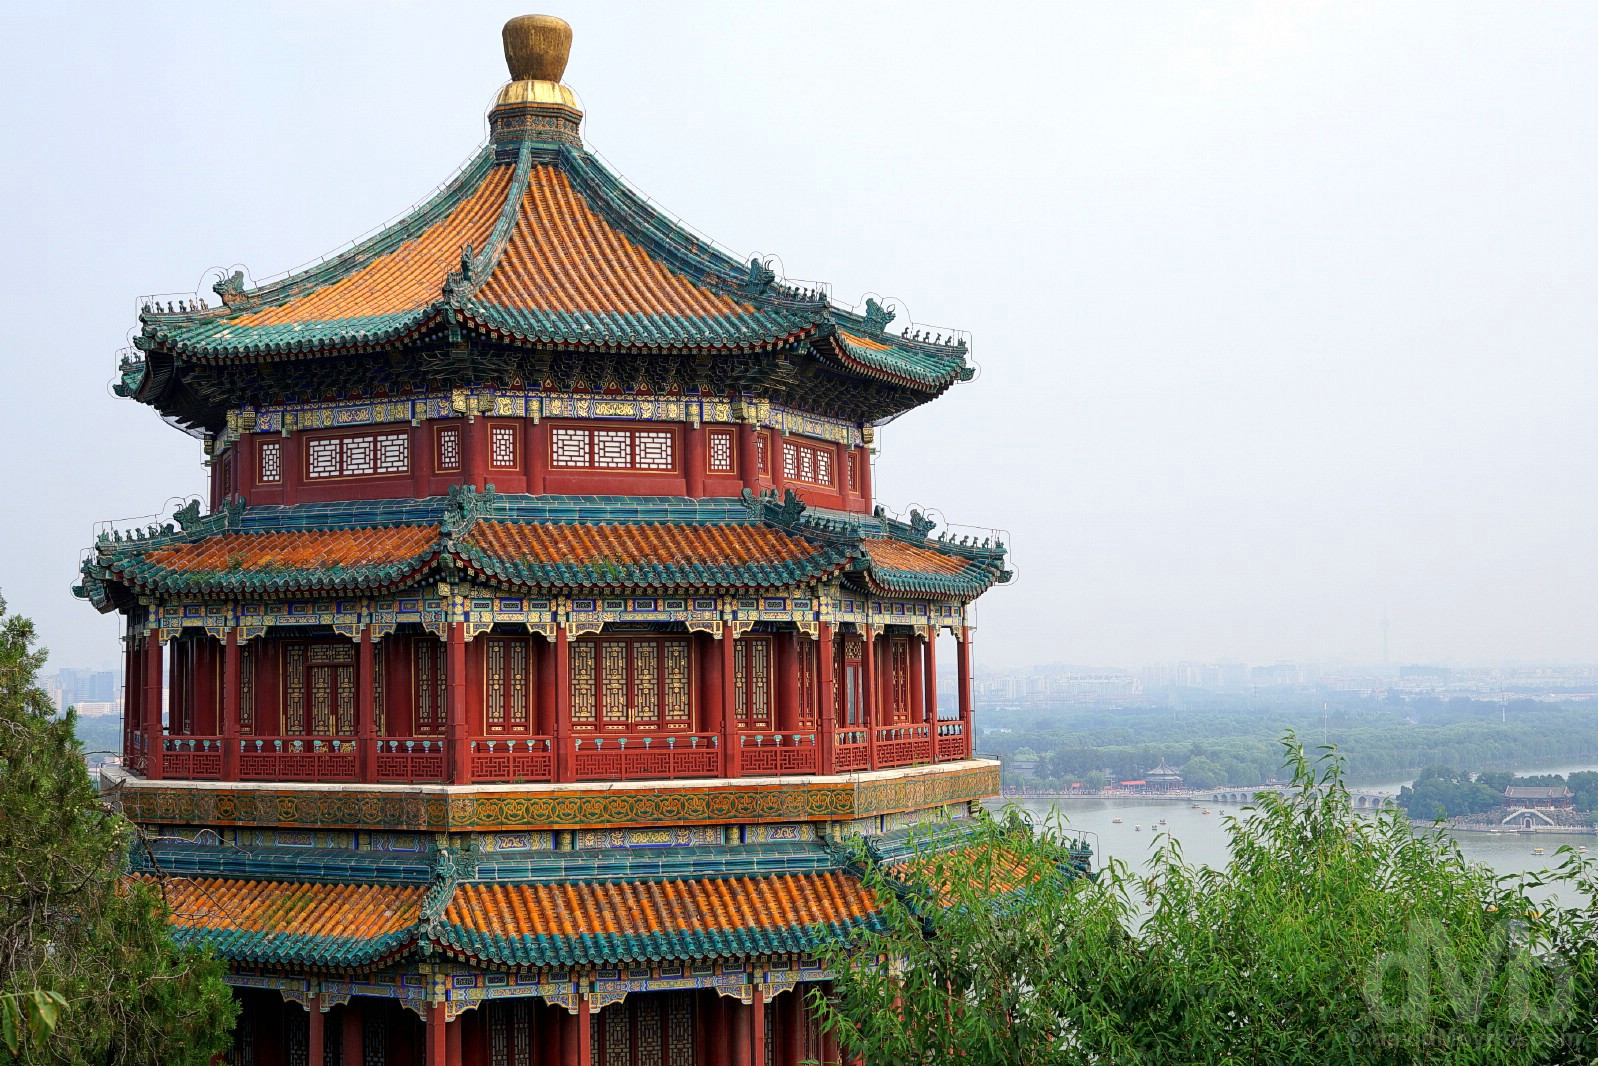 The Tower of Buddhist Incense on Longevity Hill in the grounds of the Summer Palace, Beijing, China. August 11, 2017.